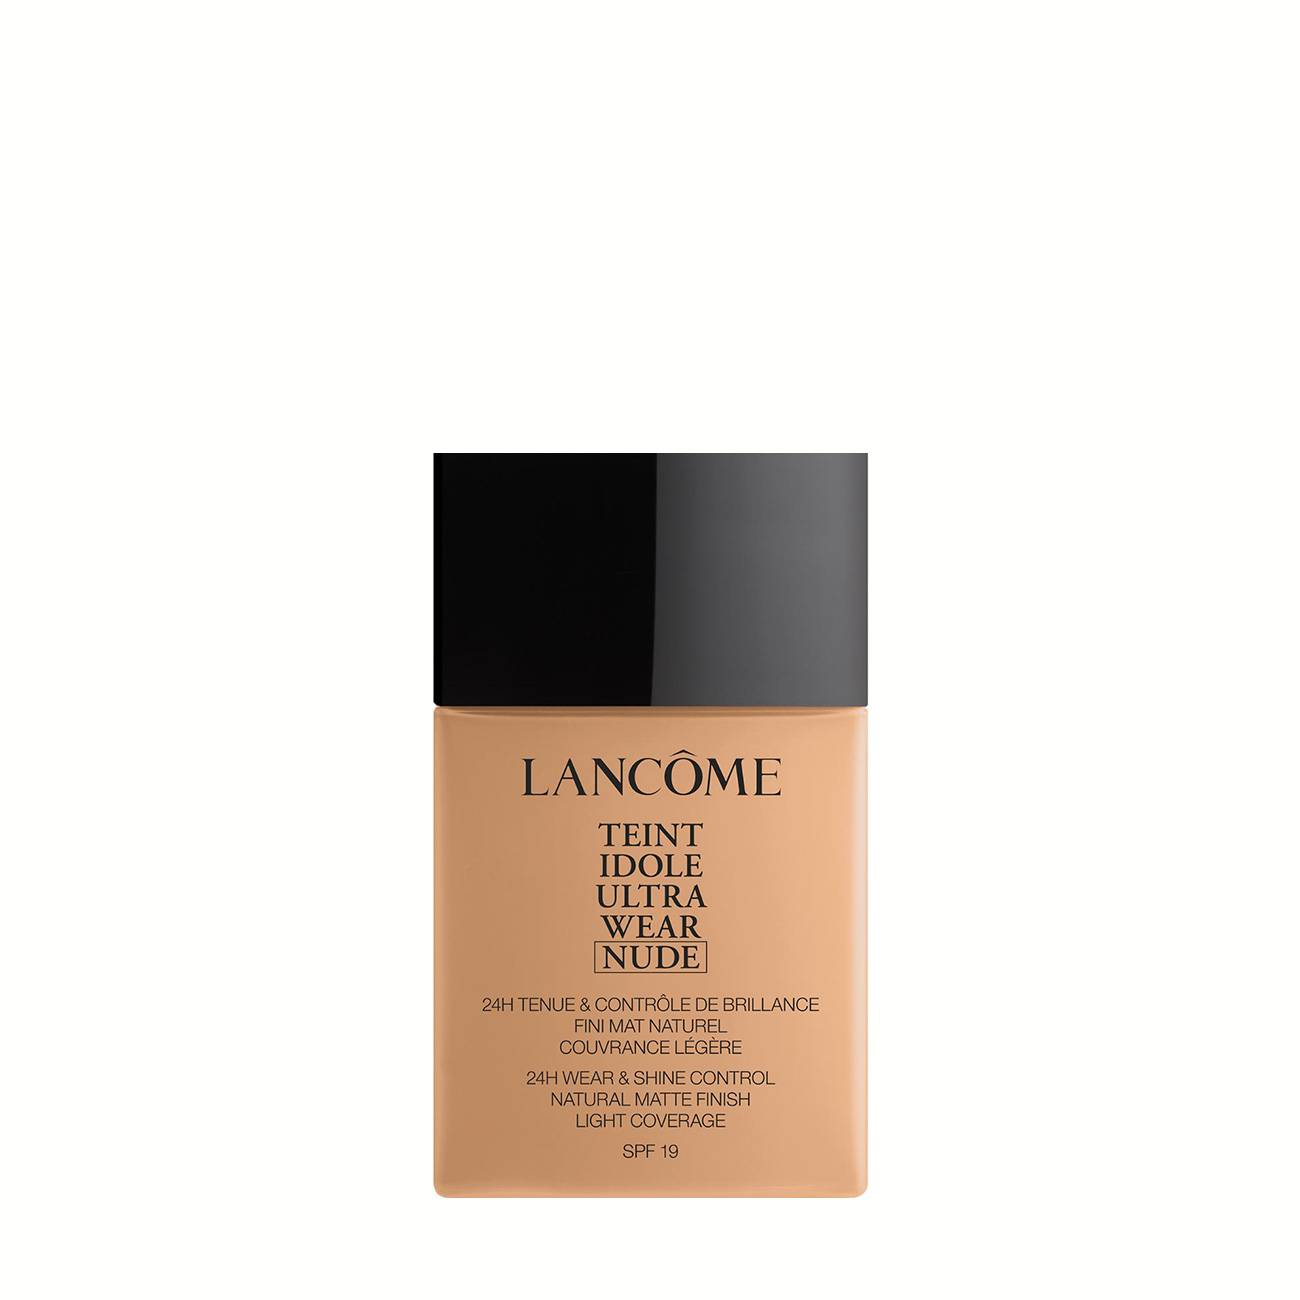 Teint Idole Ultra Wear Nude 03 40ml Lancôme imagine 2021 bestvalue.eu